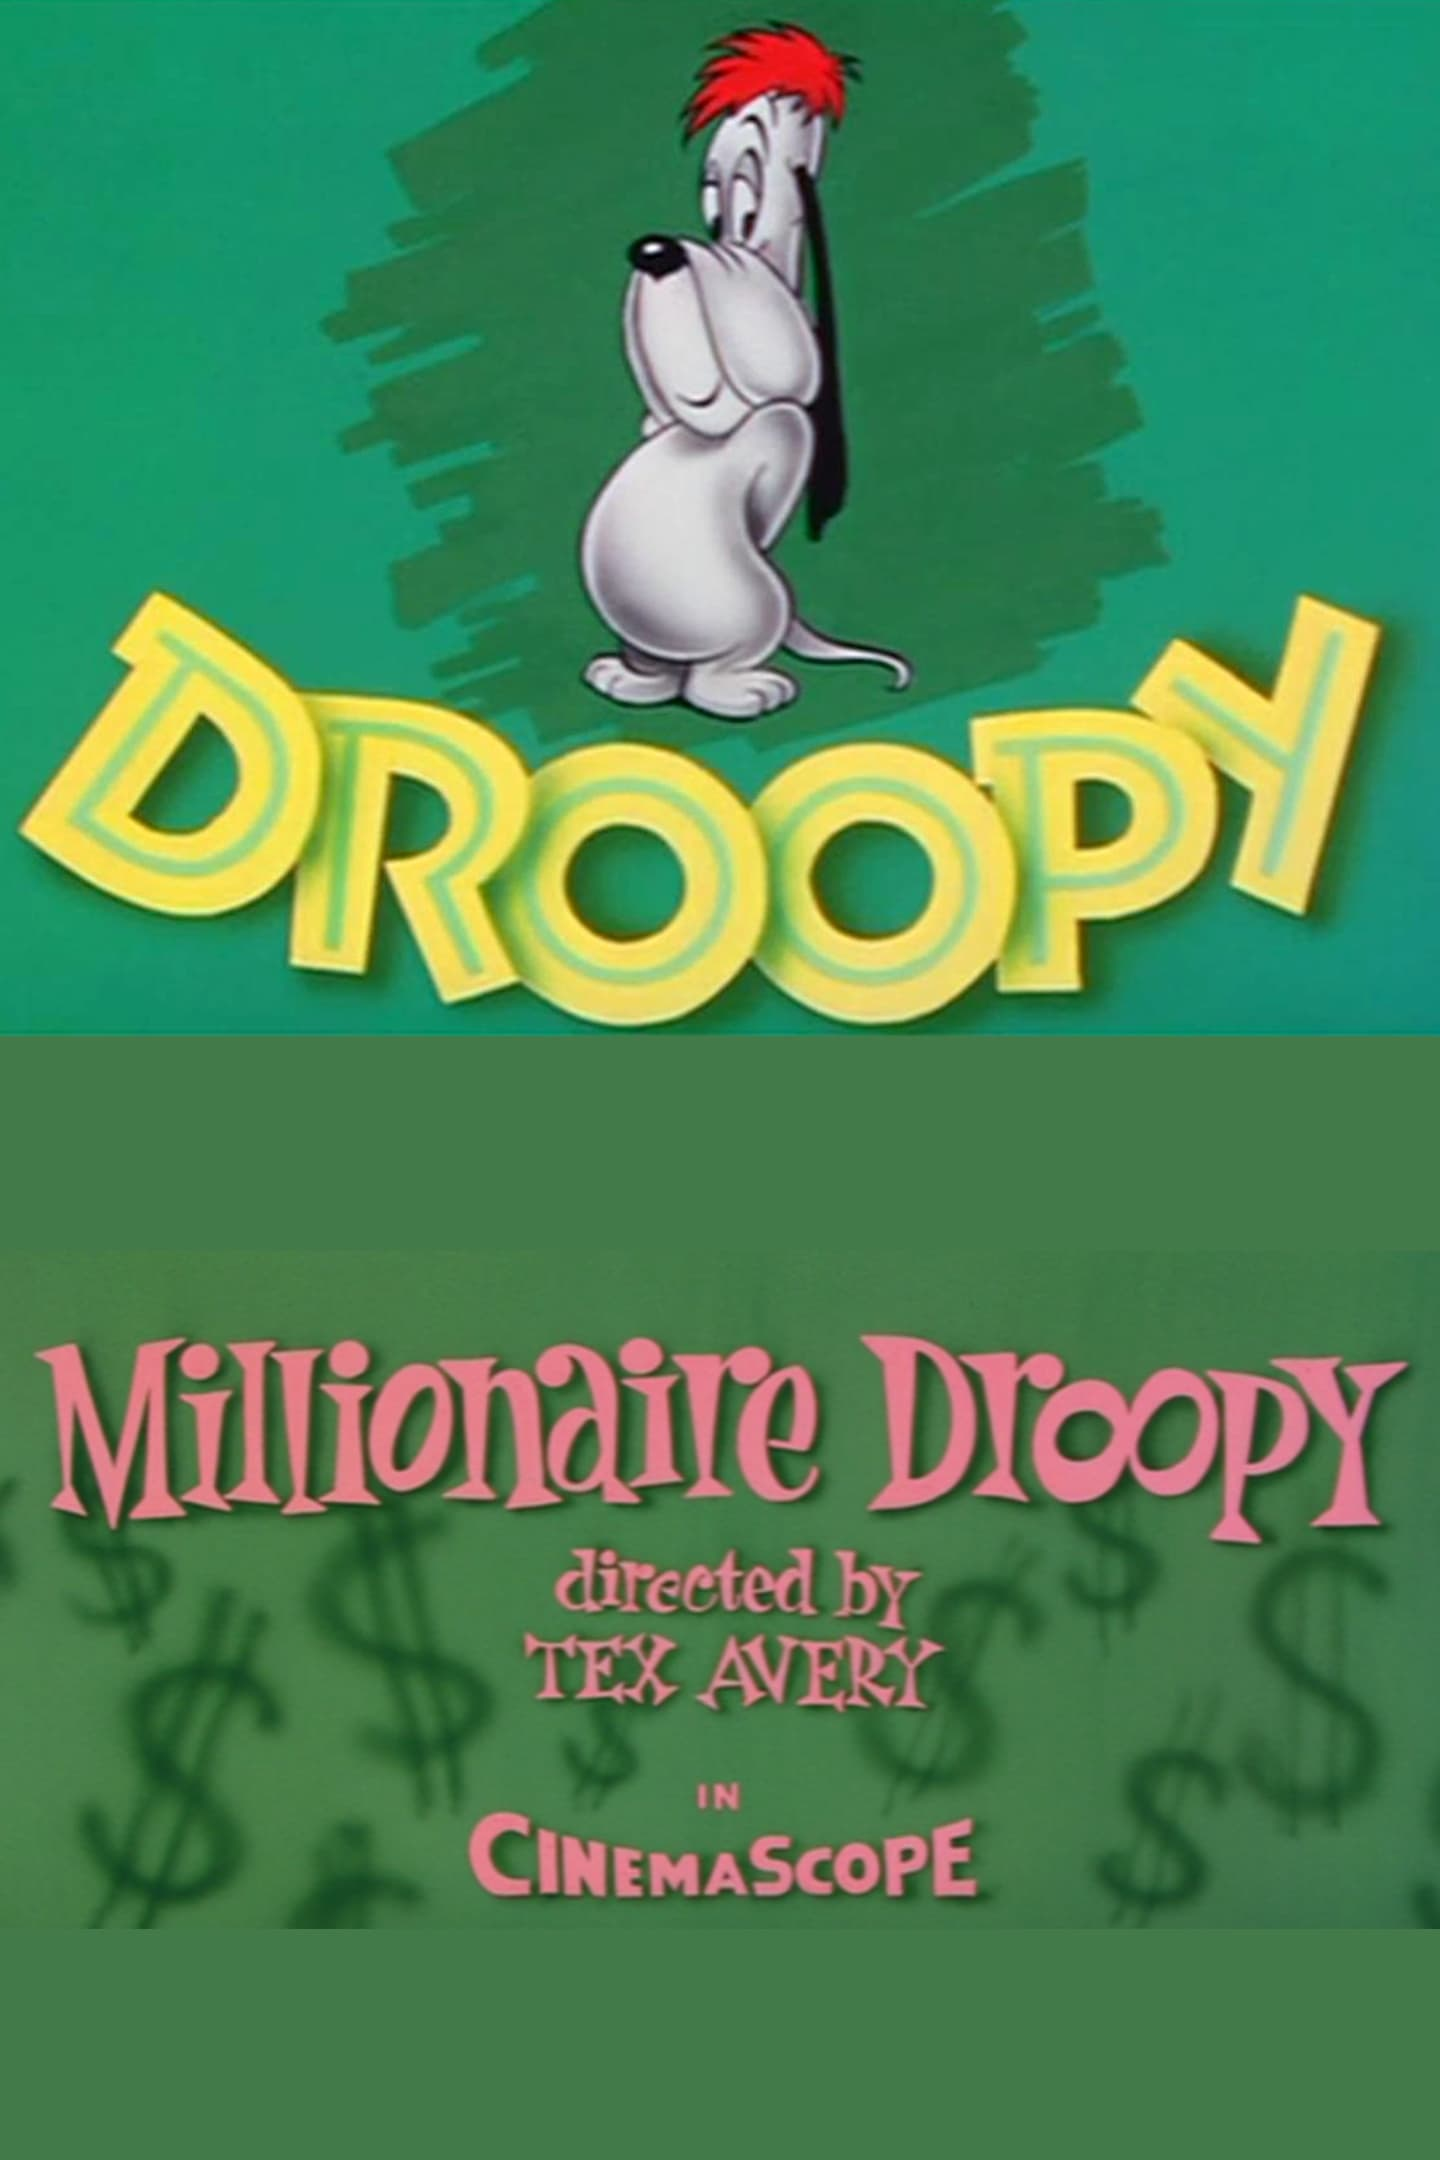 Millionaire Droopy (1956)